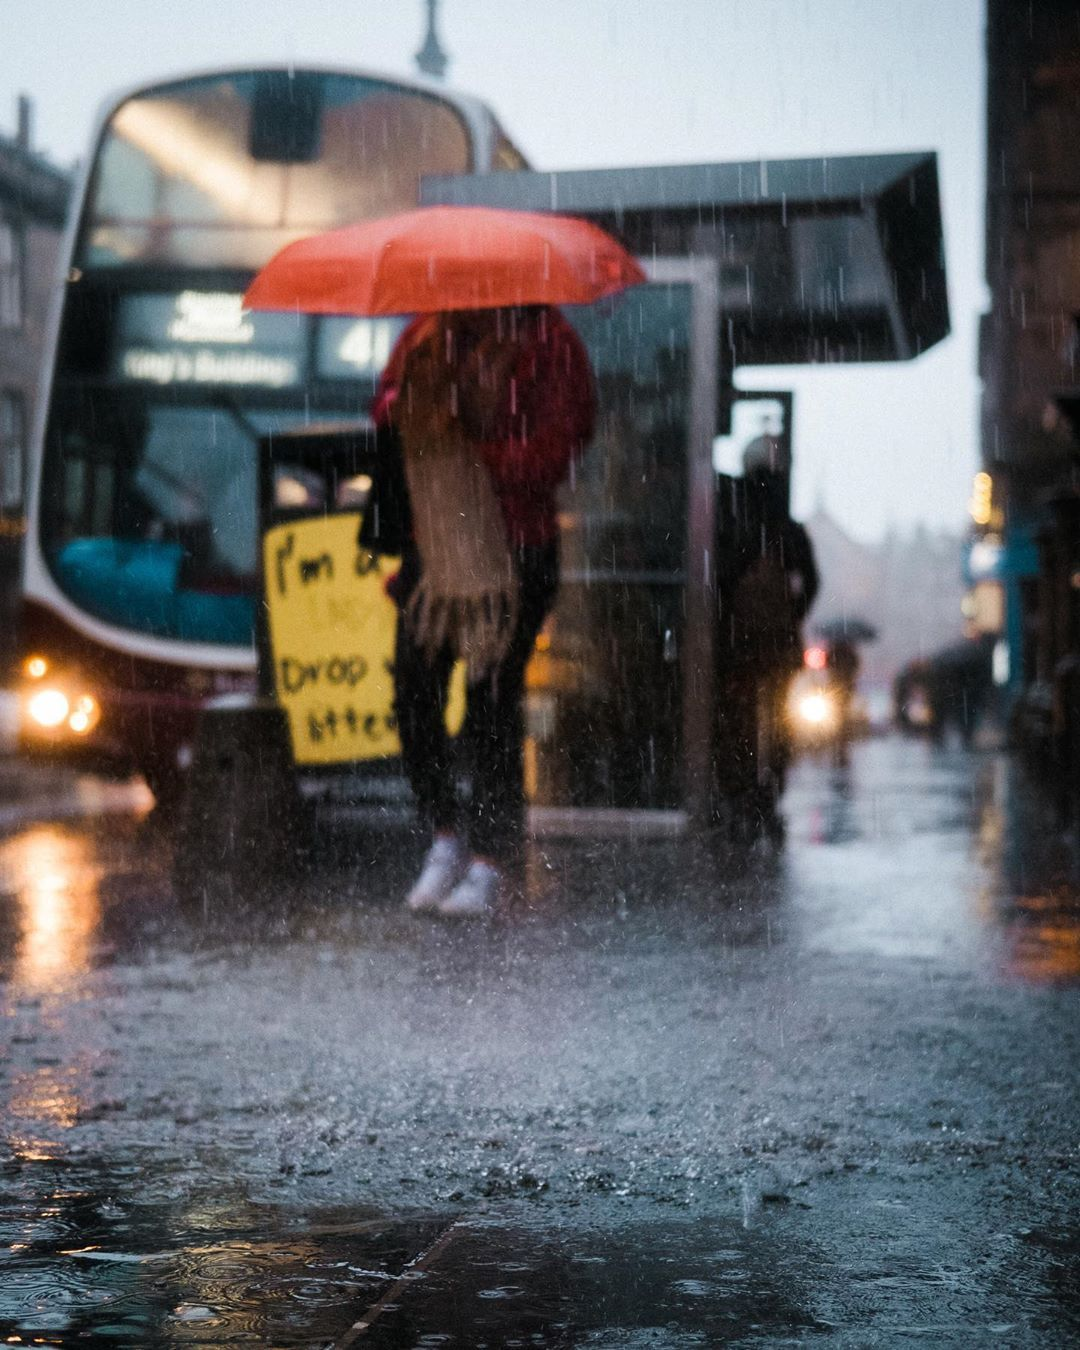 "Pete | Edinburgh | Scotland shared a photo on Instagram: ""It never rains, but it pours . . . #life_is_street #igersedinburgh #myspc #fujifilm_uk #ihsp…"" • See 1,477 photos and videos on their profile."